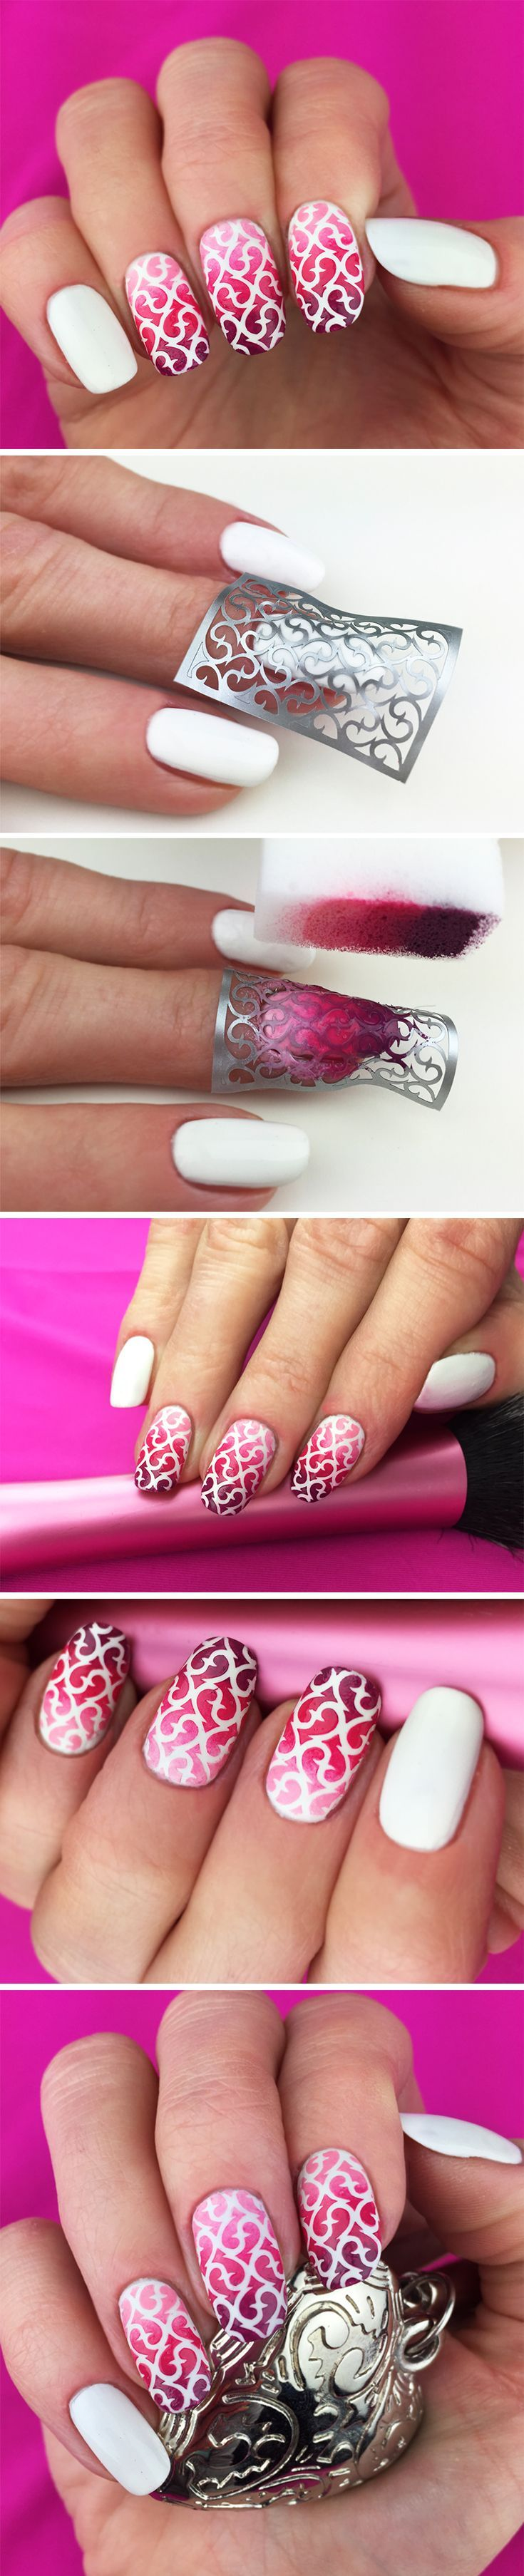 Sixty Nine pattern Nail Art Stencils - incredible nail art vinyls by Unail #ootd #nailart - http://urbanangelza.com/2015/12/21/sixty-nine-pattern-nail-art-stencils-incredible-nail-art-vinyls-by-unail-ootd-nailart/?Urban+Angels http://www.urbanangelza.com